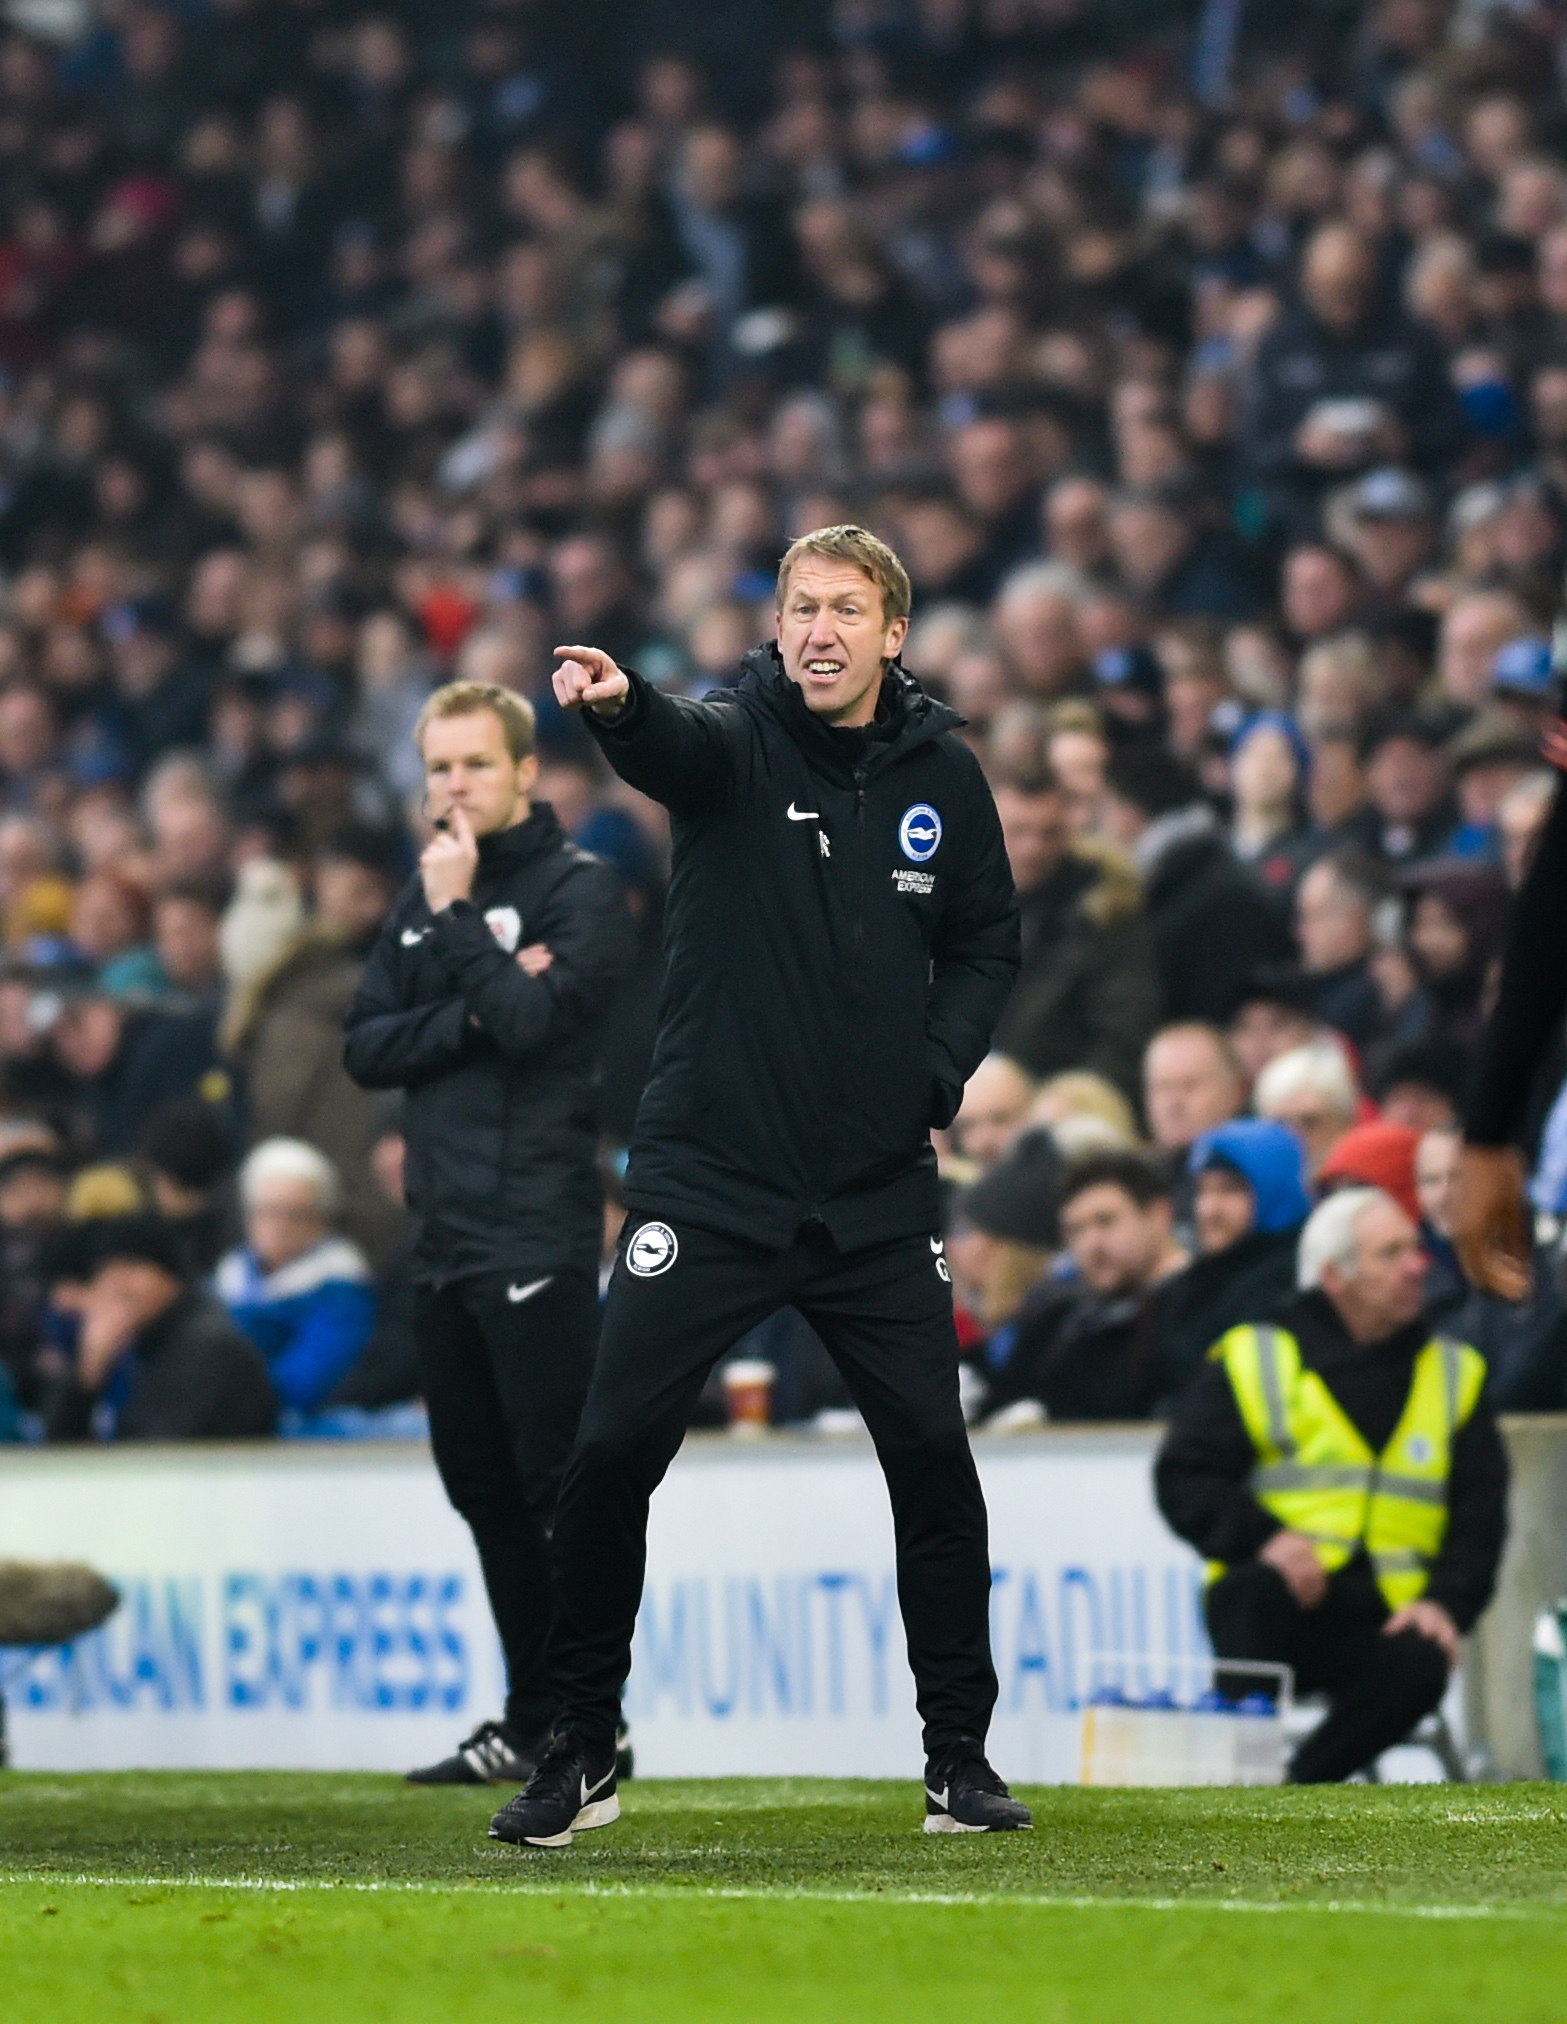 It's an inside job for Albion boss Graham Potter when it comes to opinions that matter